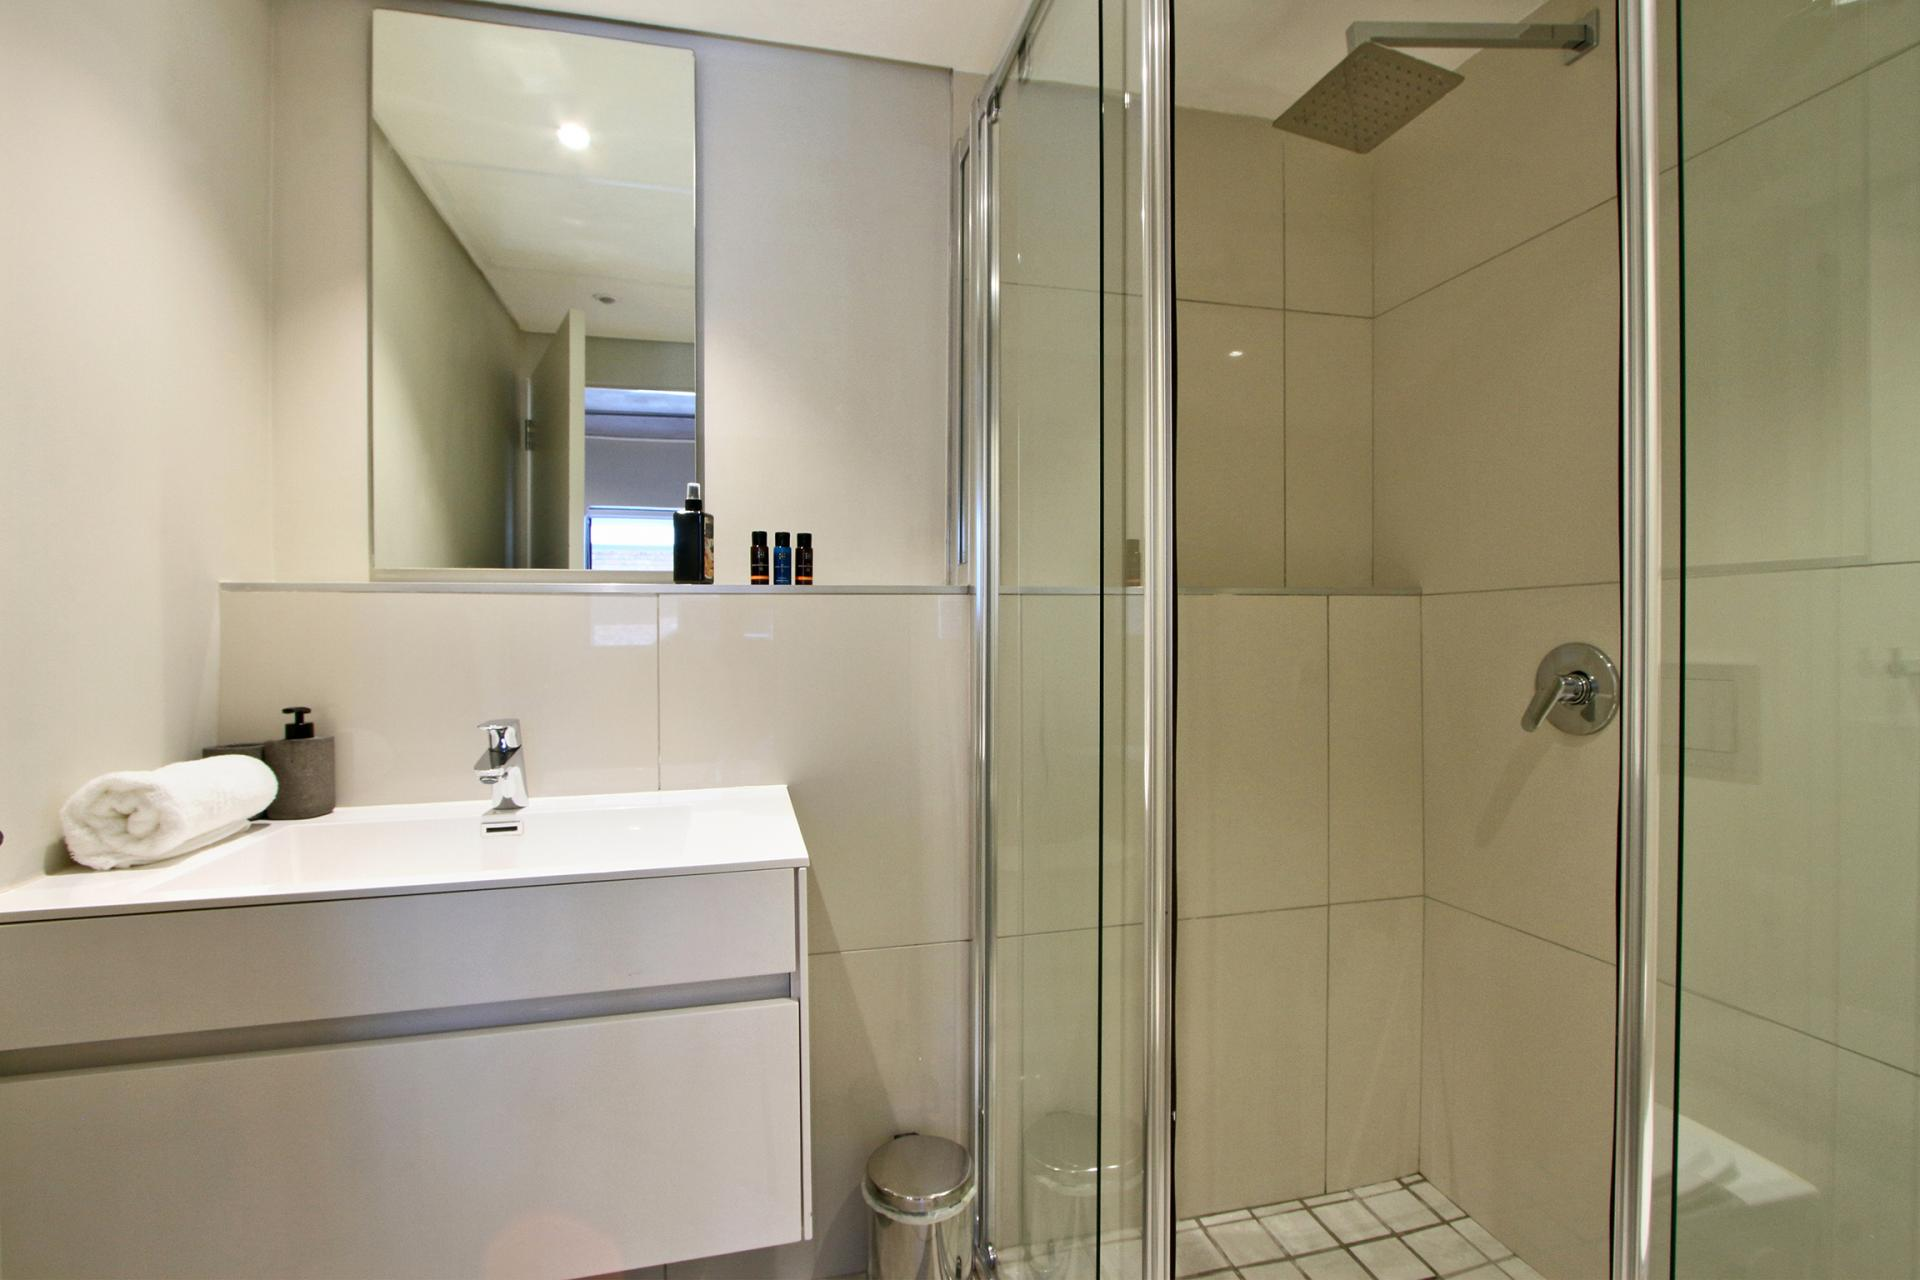 Shower at Docklands Cape Town Apartments, Green Point, Cape Town